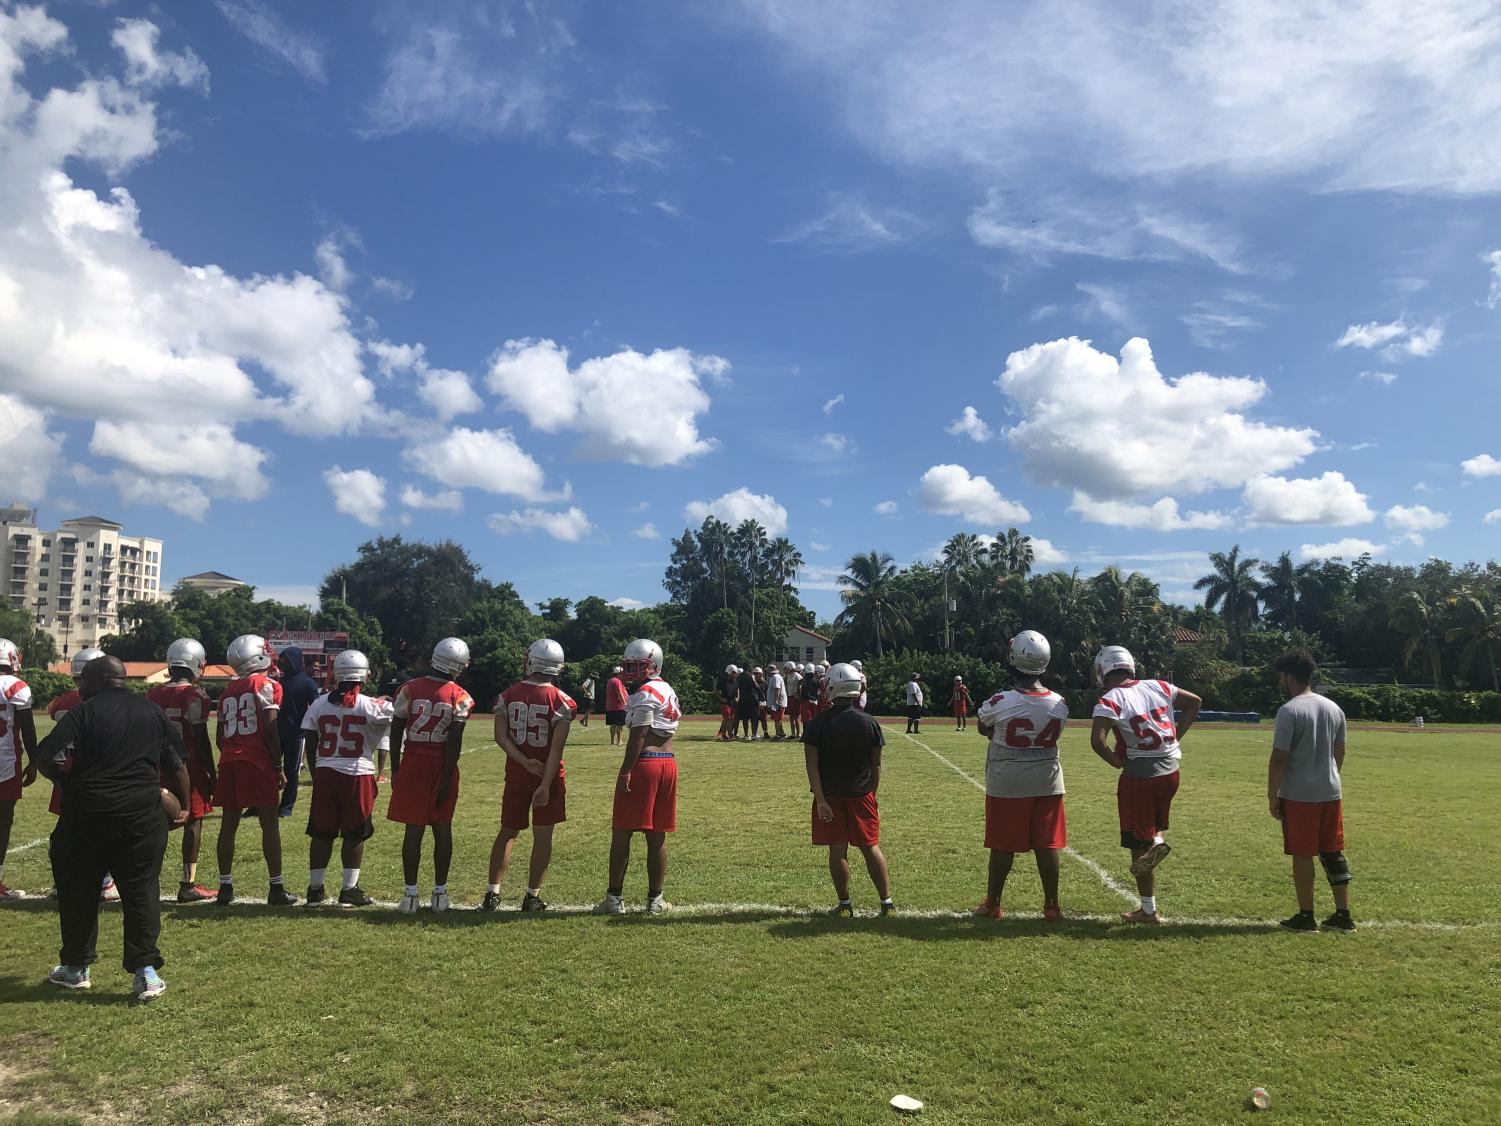 The varsity football team line up on the field, working hard and running their plays during practice.